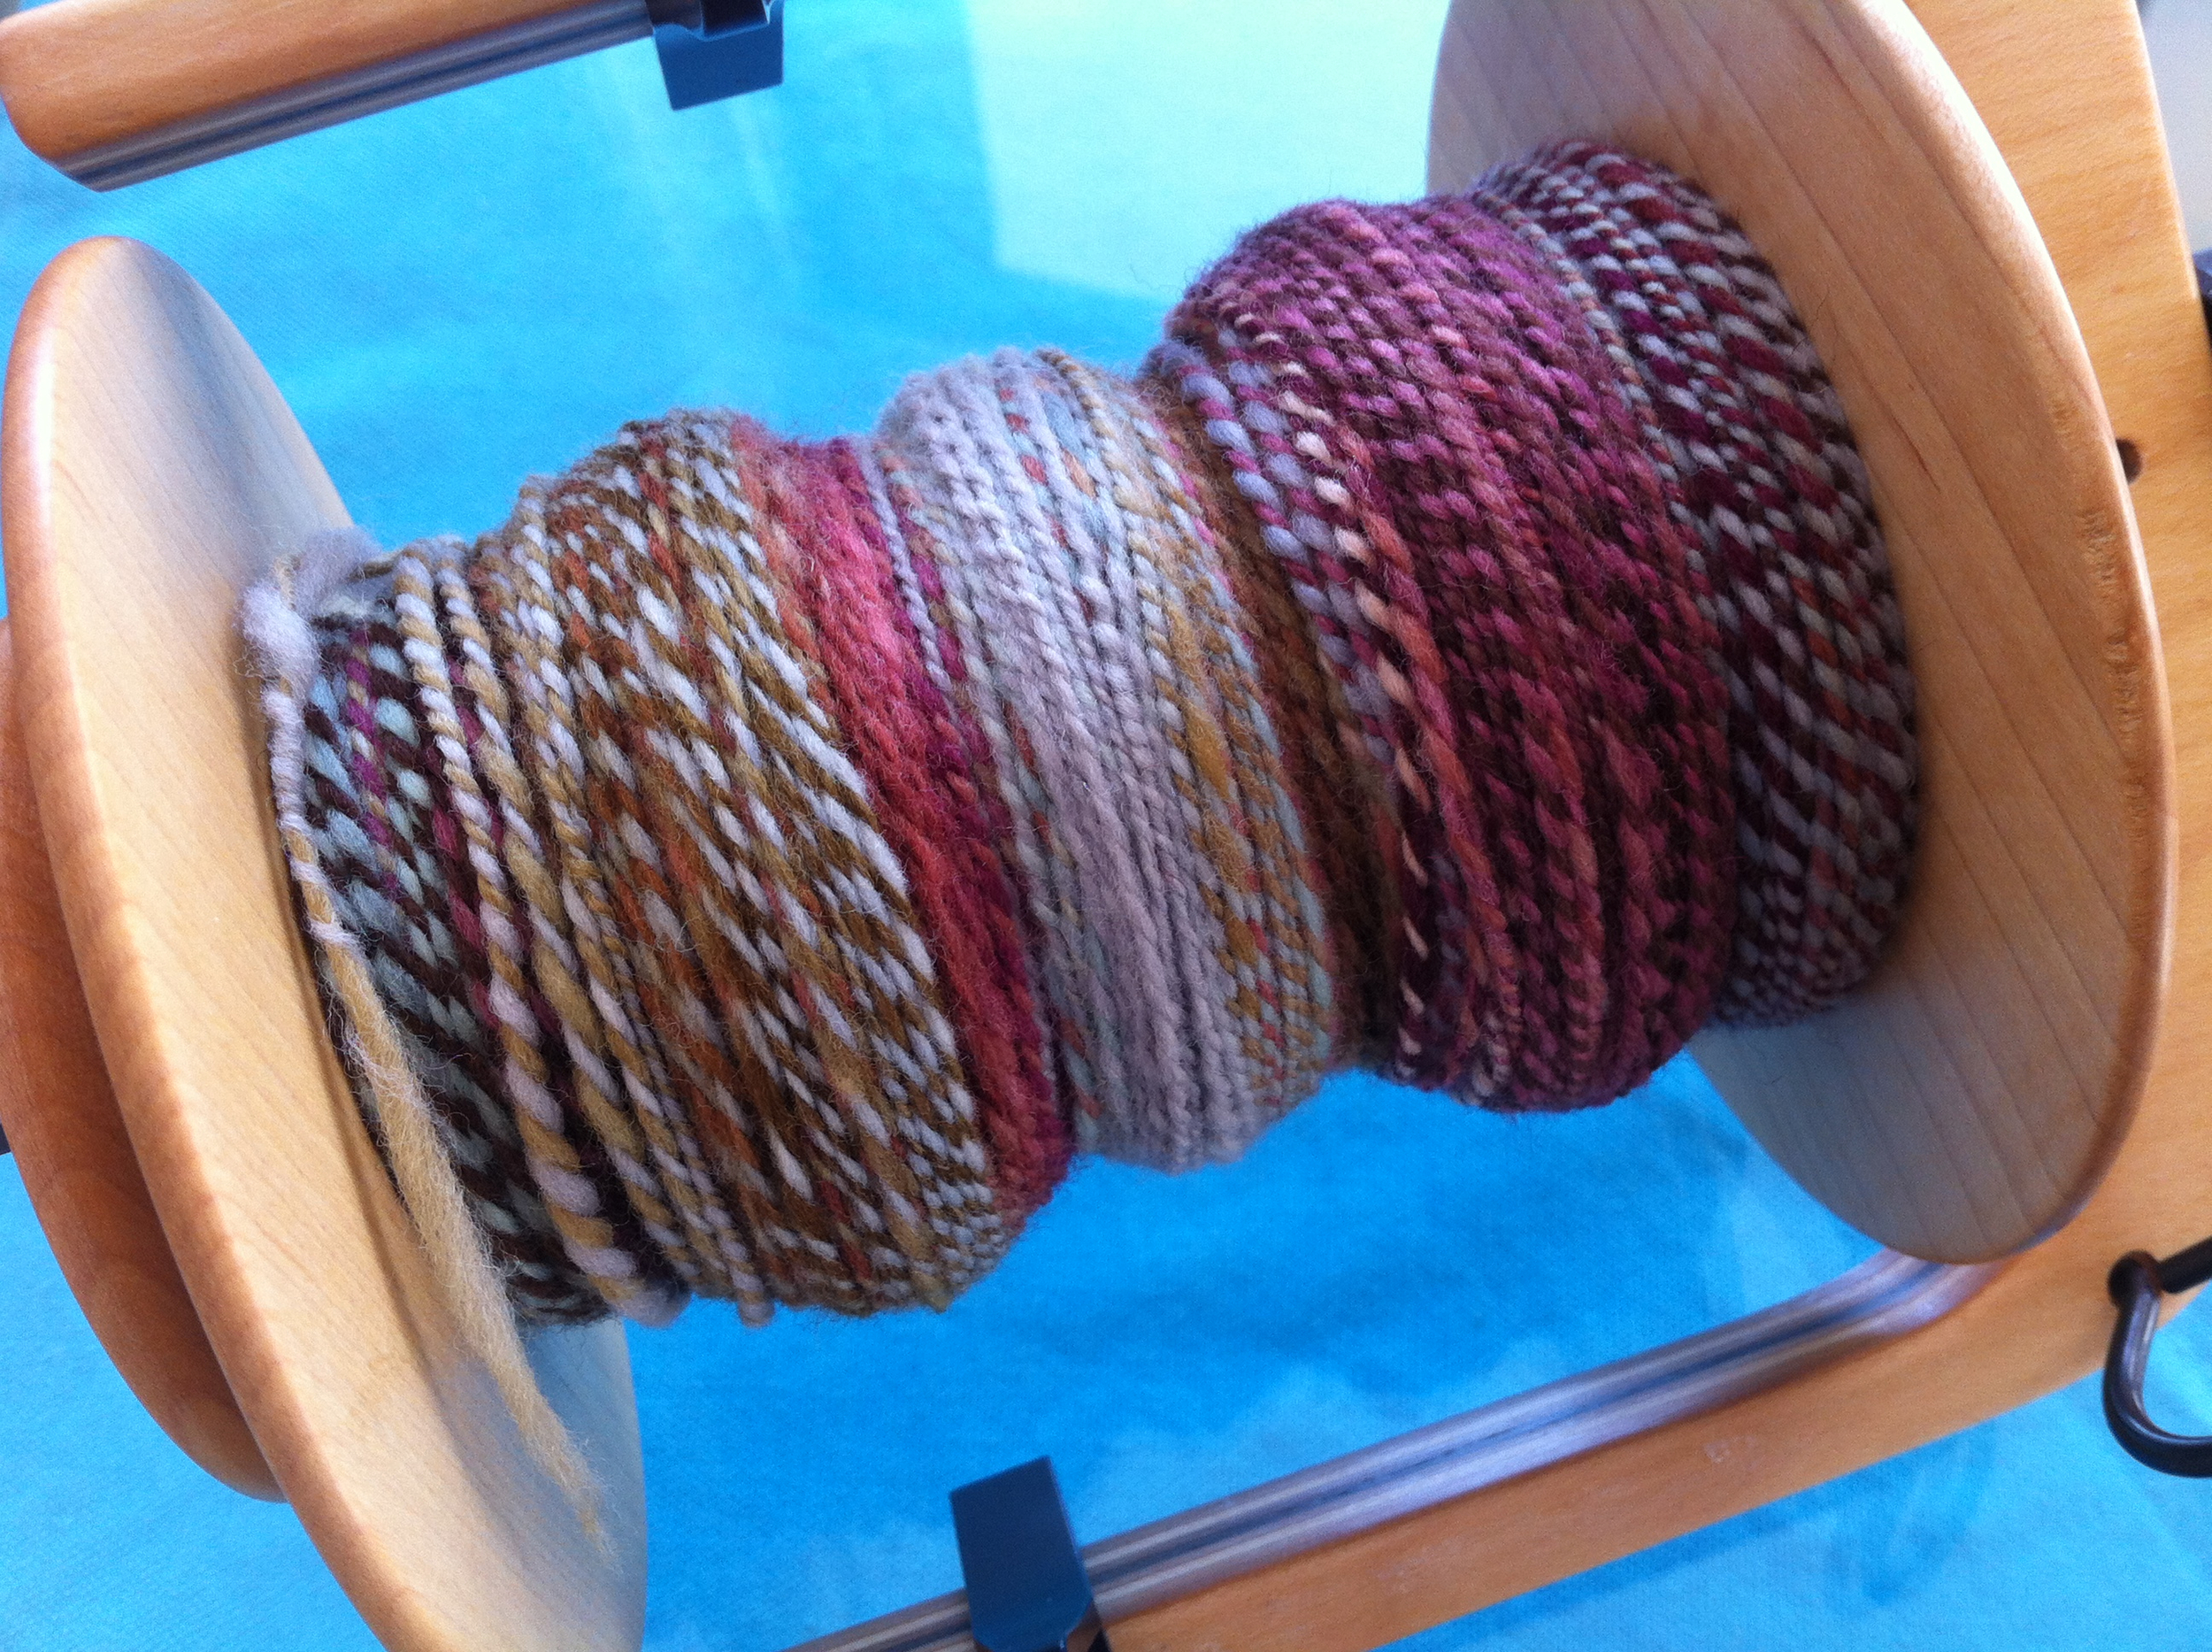 Then I decided to ply those two bobbins together!